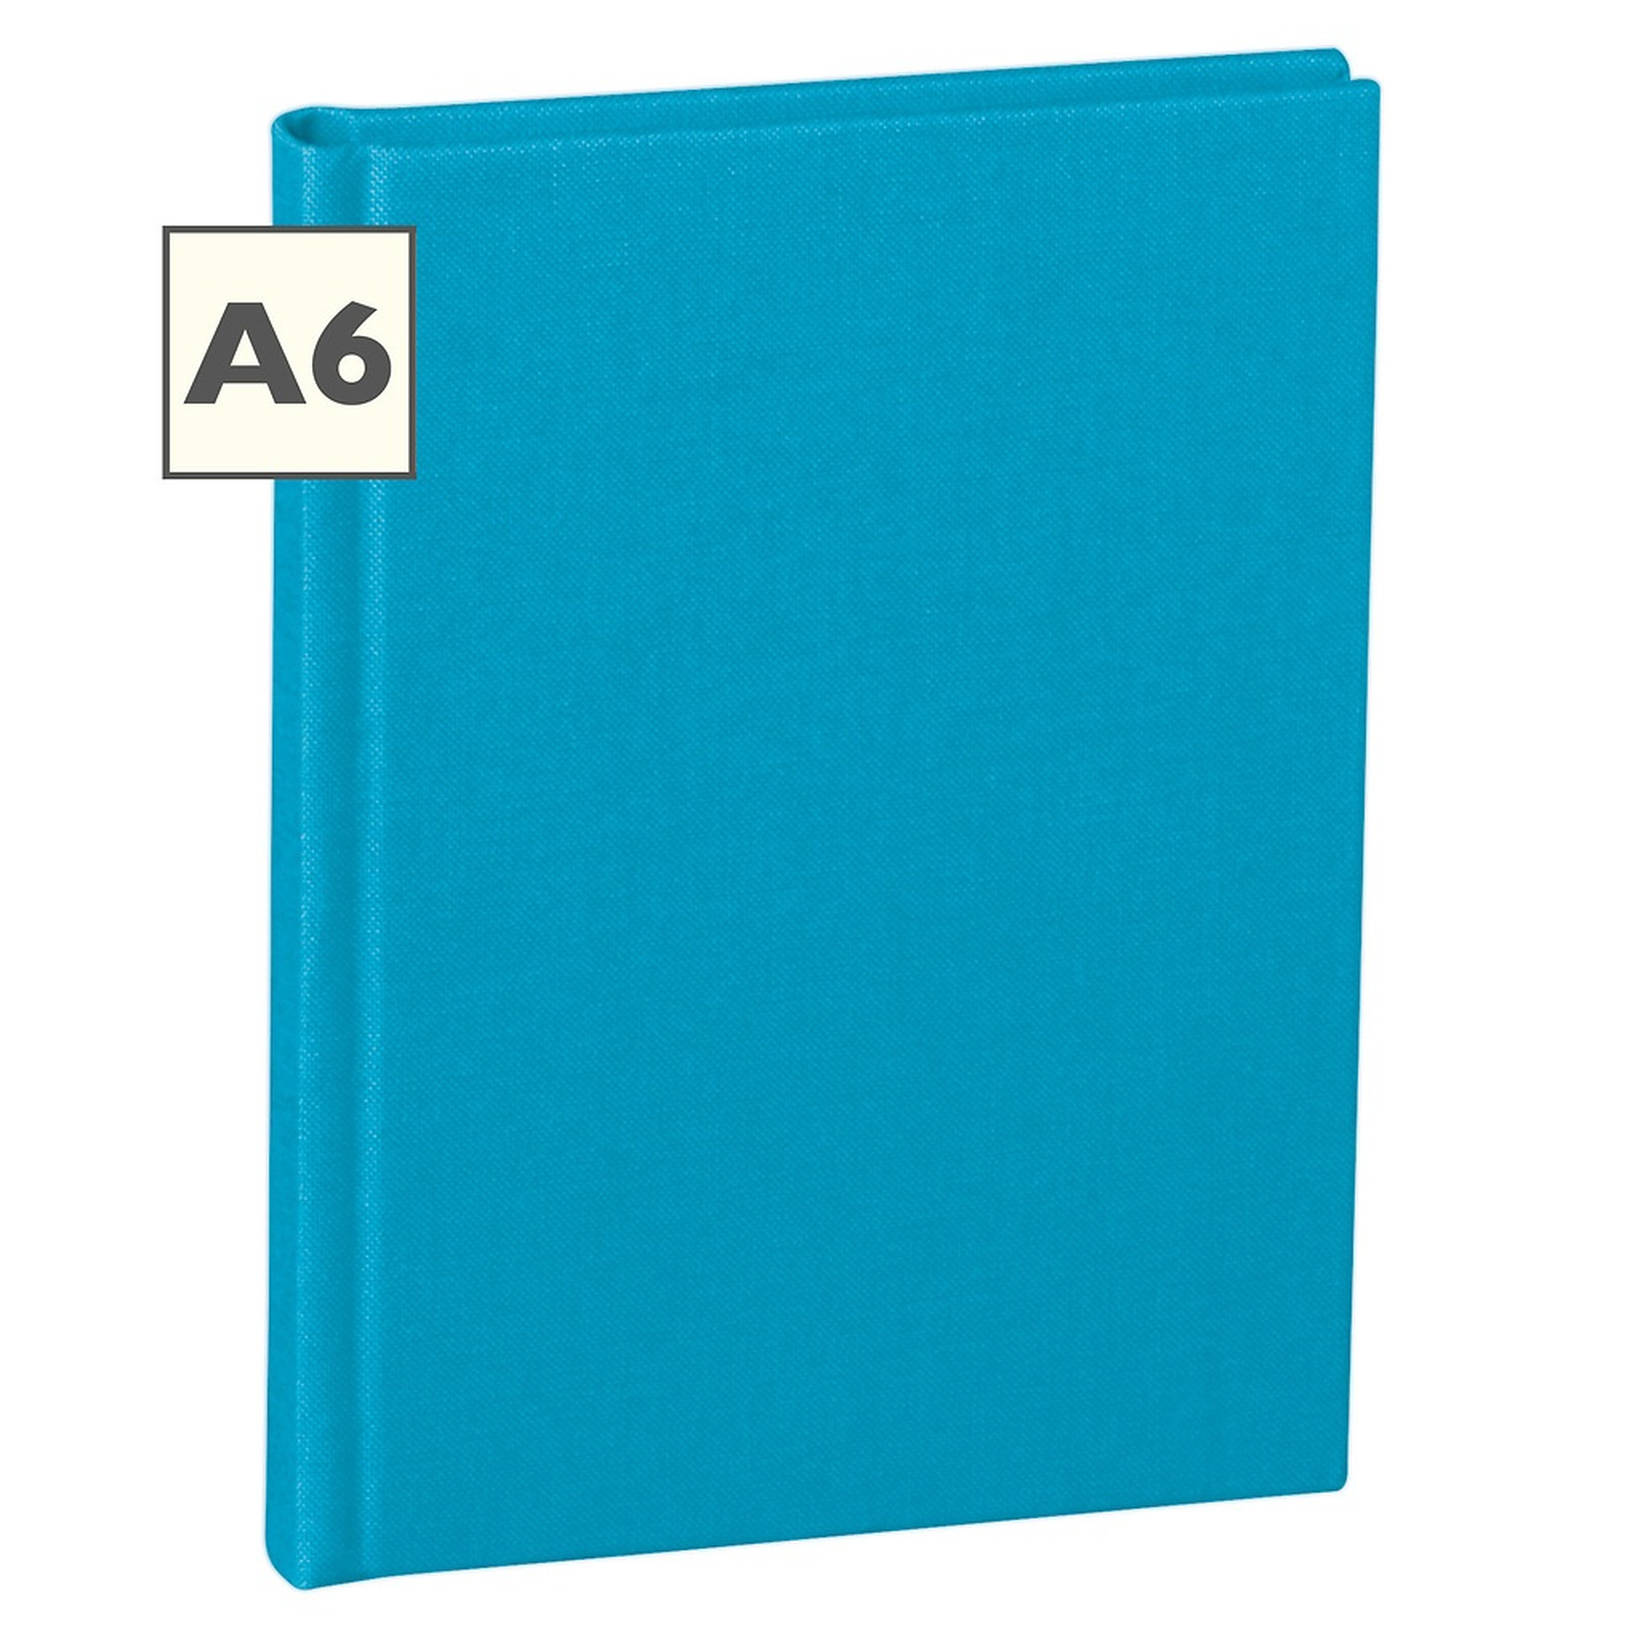 Notebook Classic A6 With Linen Binding, Ruled, Turquoise